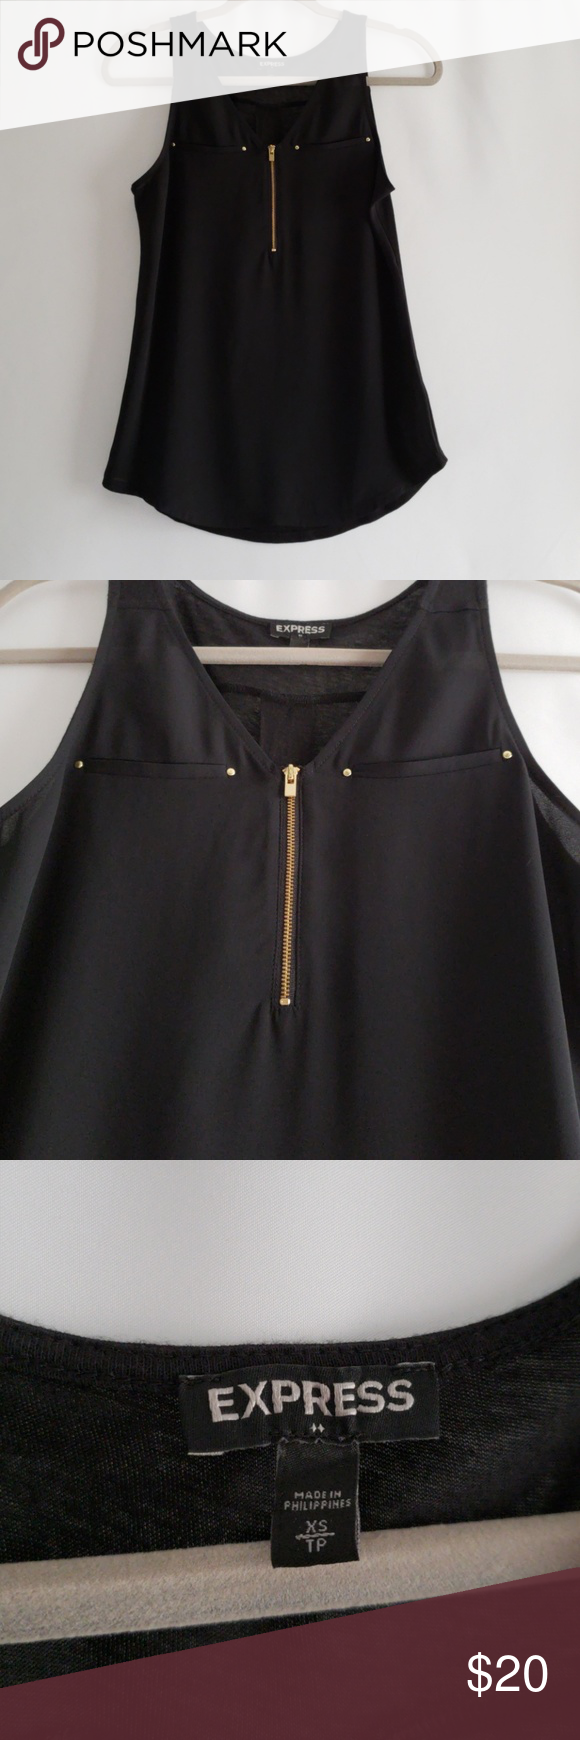 """Express Black Tank Express Black Satin Hudson Tank  Lovely for layering under jackets or topping a Columnist or Editor on its own, this dressy tank is four-season ready. The soft, satin front boasts faux pockets and a zipper, and connects at the shoulders to a super smooth knit back.  Deep V-neck with 5 1/2"""" zipper front detail  Two faux welt breast pockets with circle metal accents  Satin front, smooth knit back  Loose fit, curved hem  Polyester/Rayon  Excellent Condition Express Tops Tank Tops"""